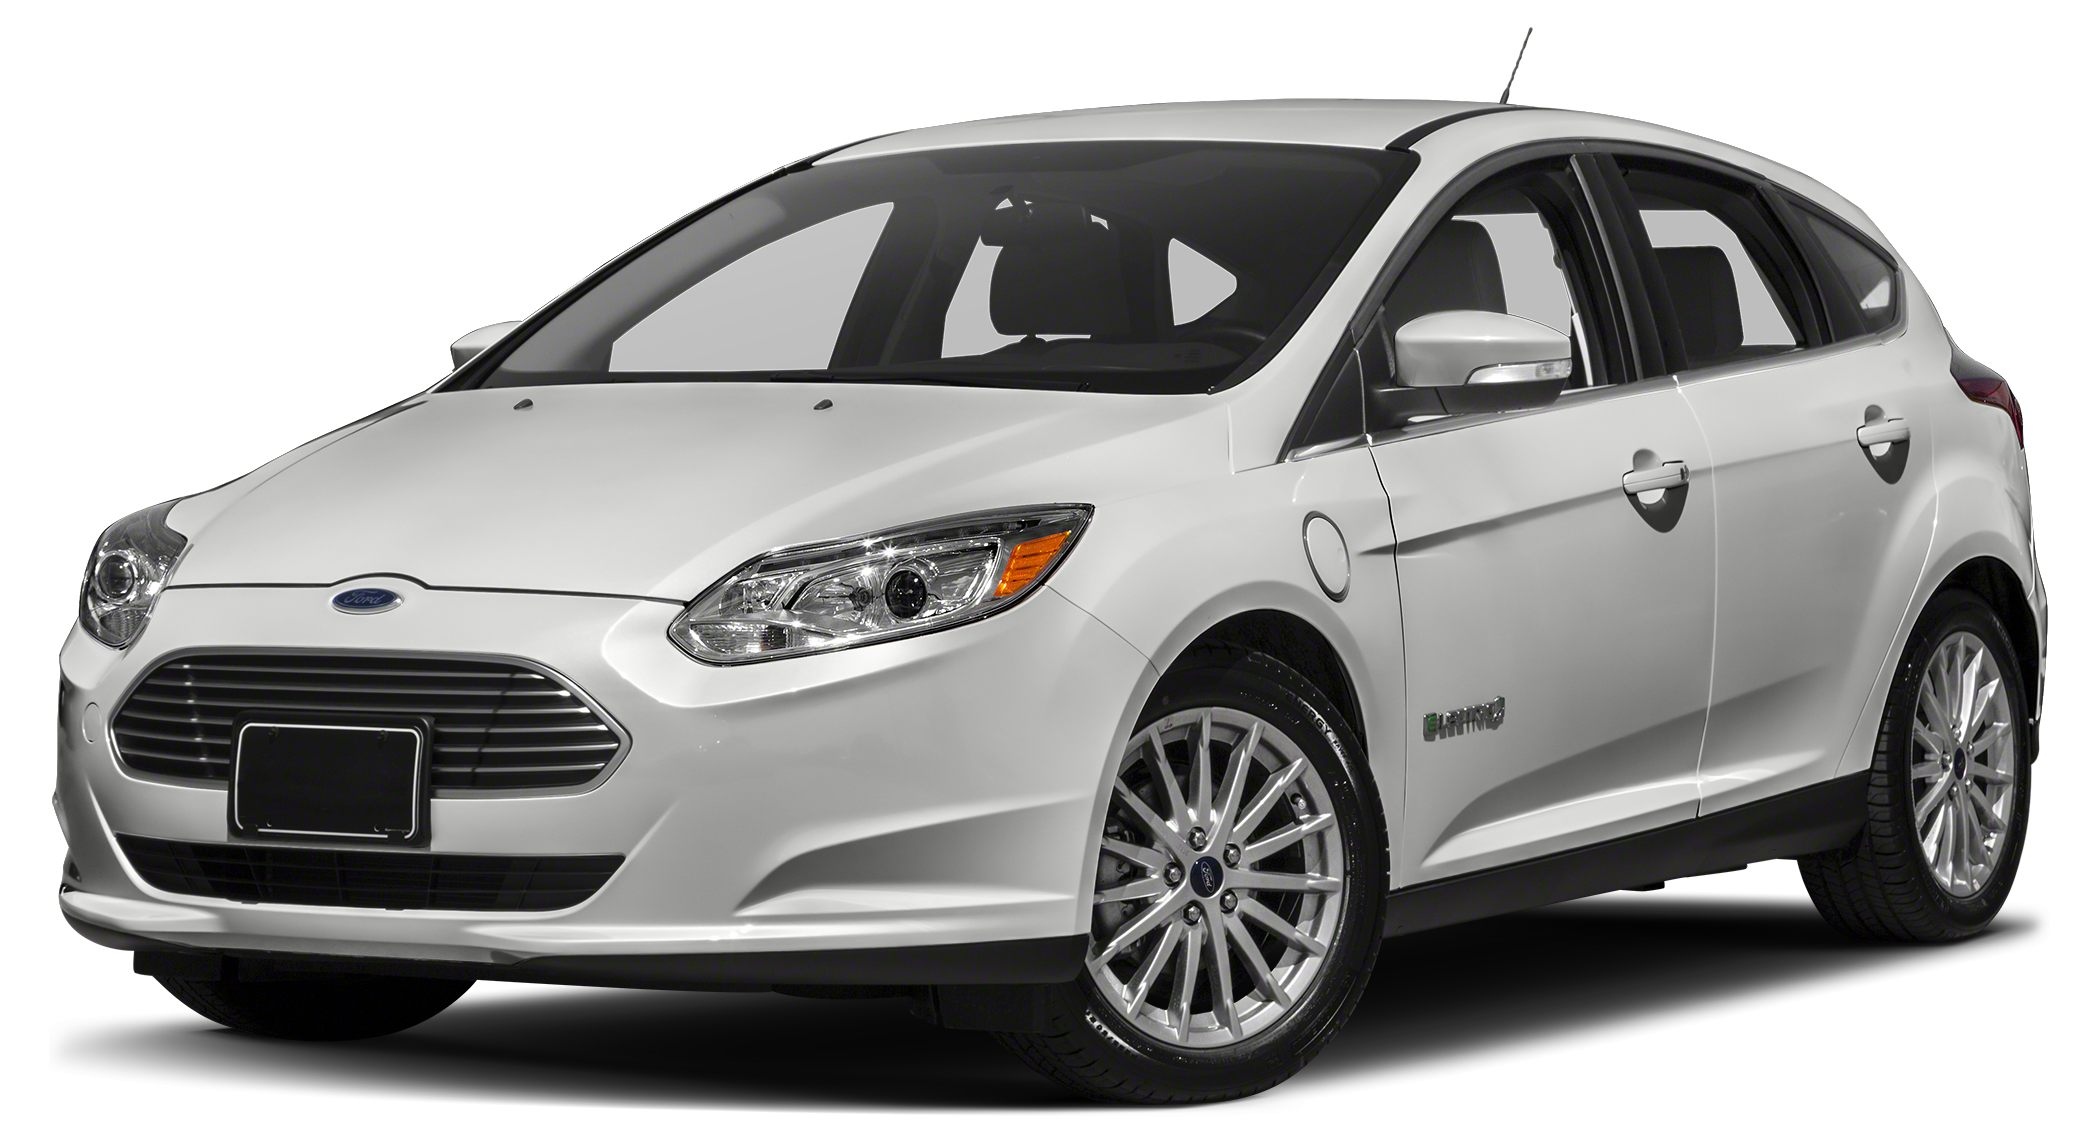 2016 Ford Focus Electric Base With the Ford Focus Electric say goodbye to gas stations oil chang